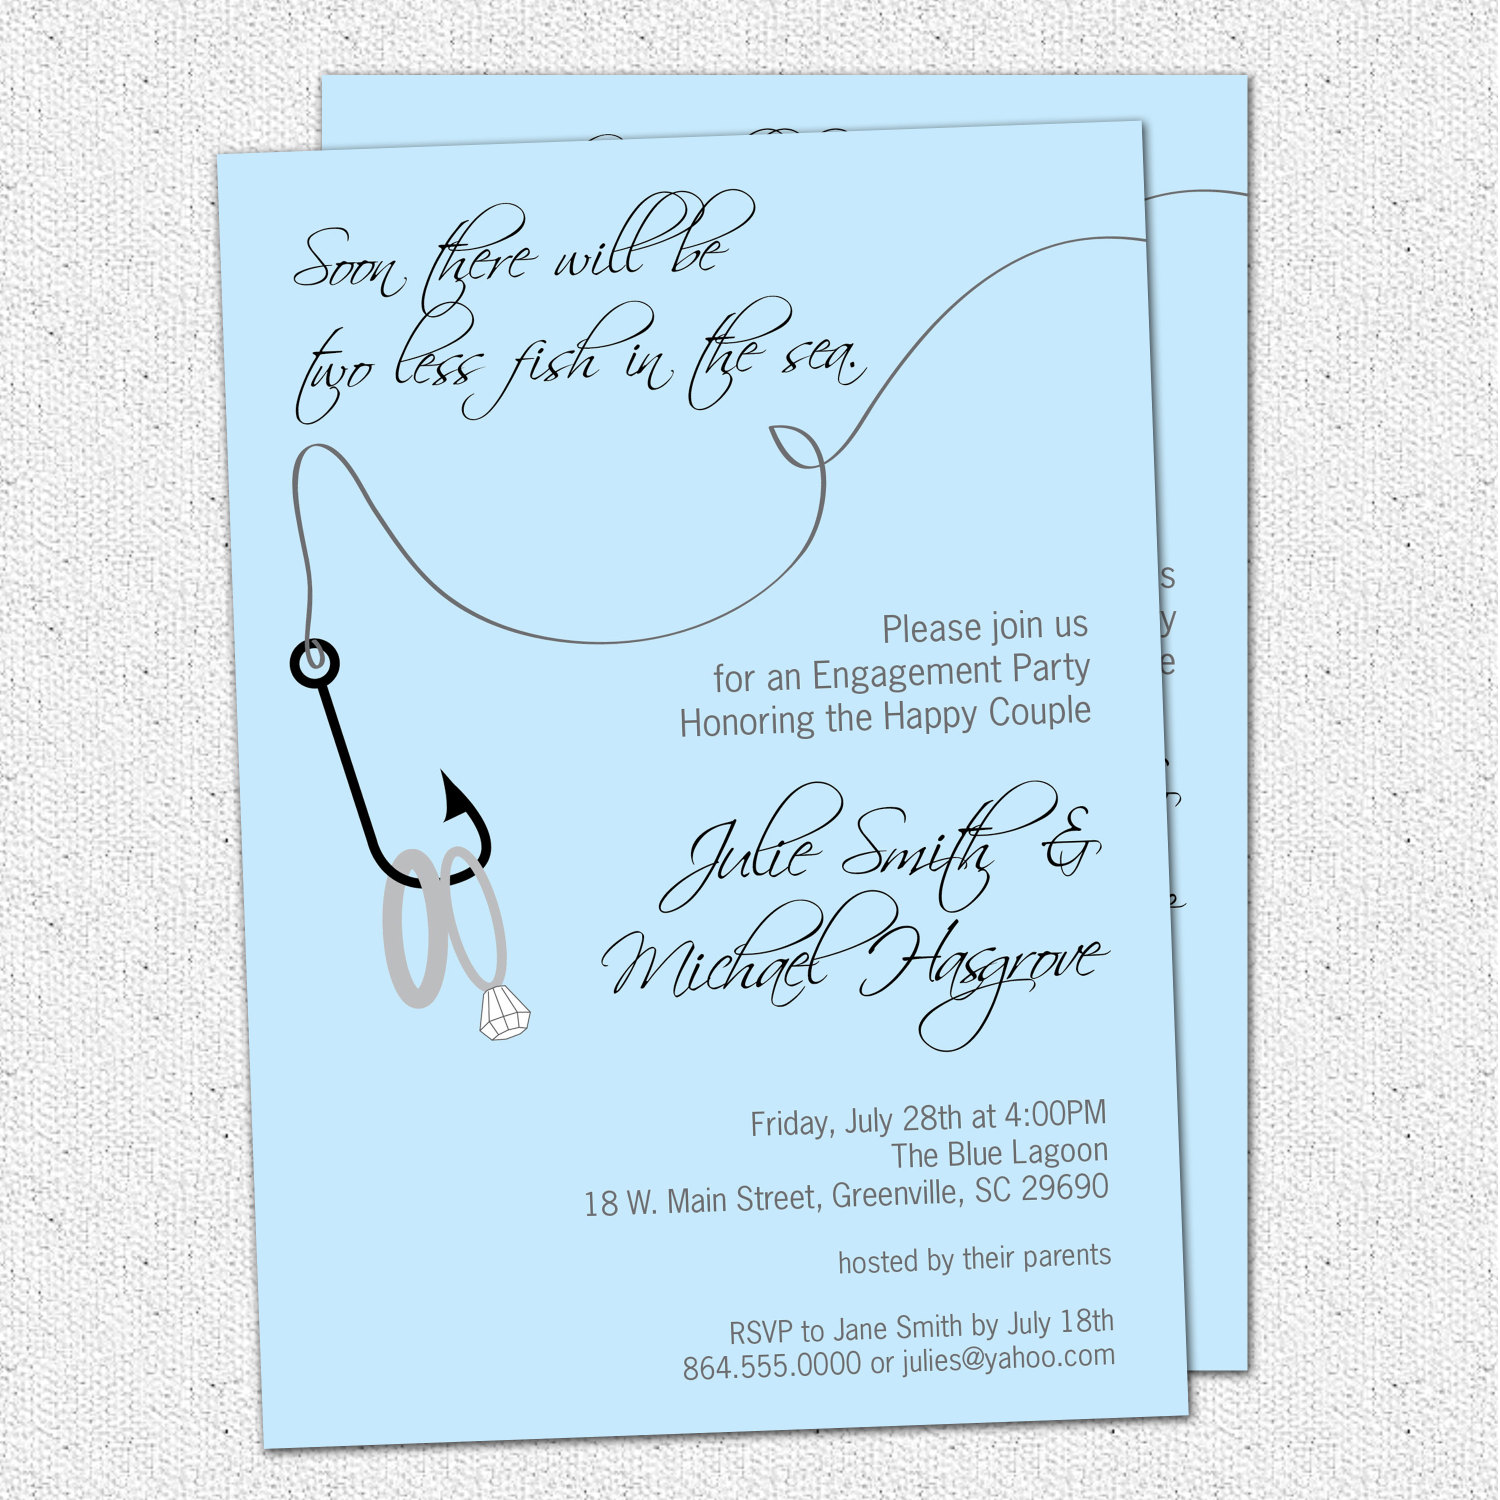 Engagement Party Invitations Two Less Fish in the Sea Rings – Fishing Party Invitations